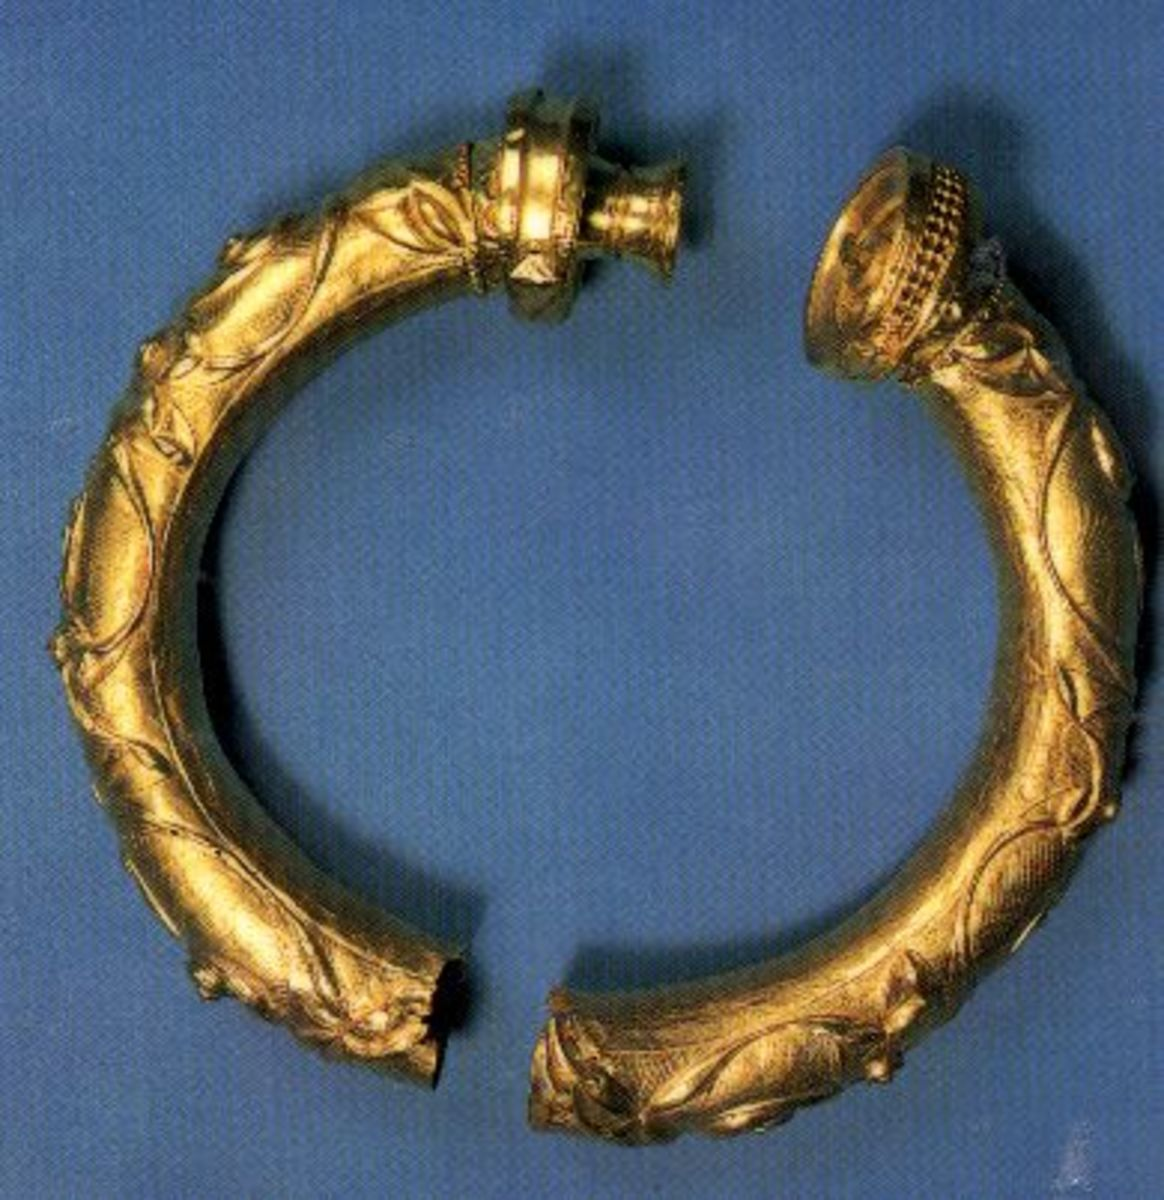 Broighter Collar - a photograph of a gold torque type collar, thought to have been crafted around 100 AD. Possibly belonged to a warrior. Found by Thomas Nicholl in 1896, whilst ploughing a field.